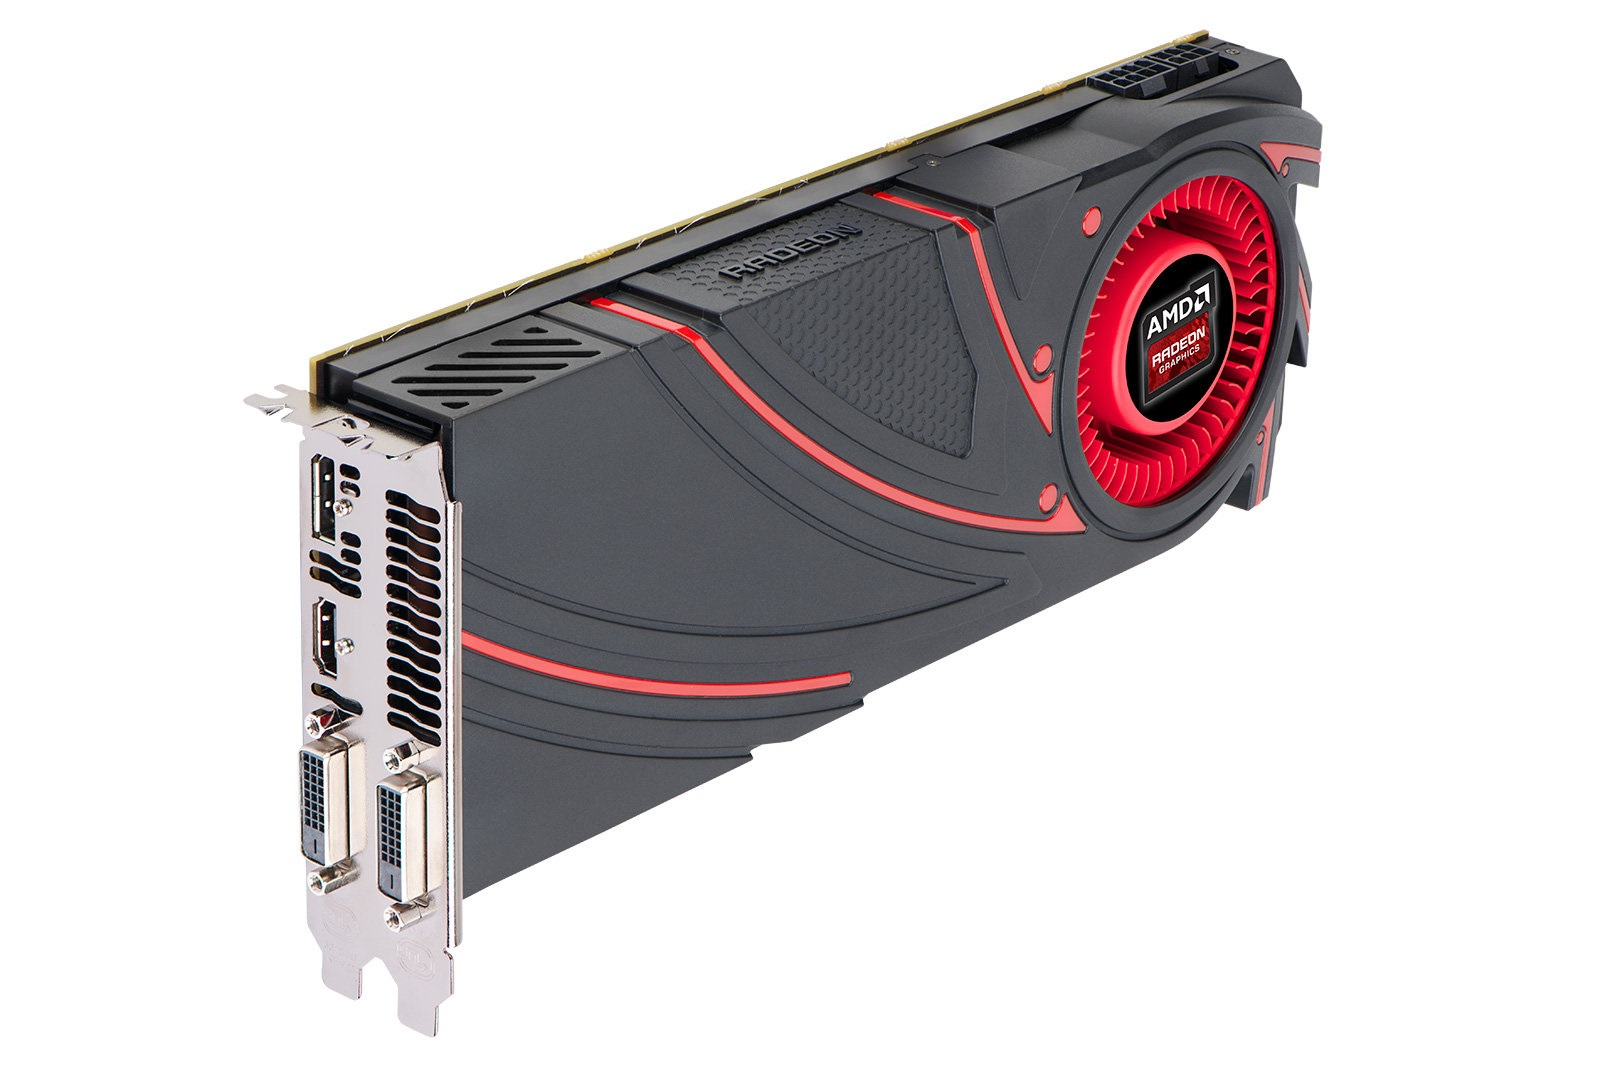 AMD Radeon R9 290X To Feature New AMD CrossFireX Technology